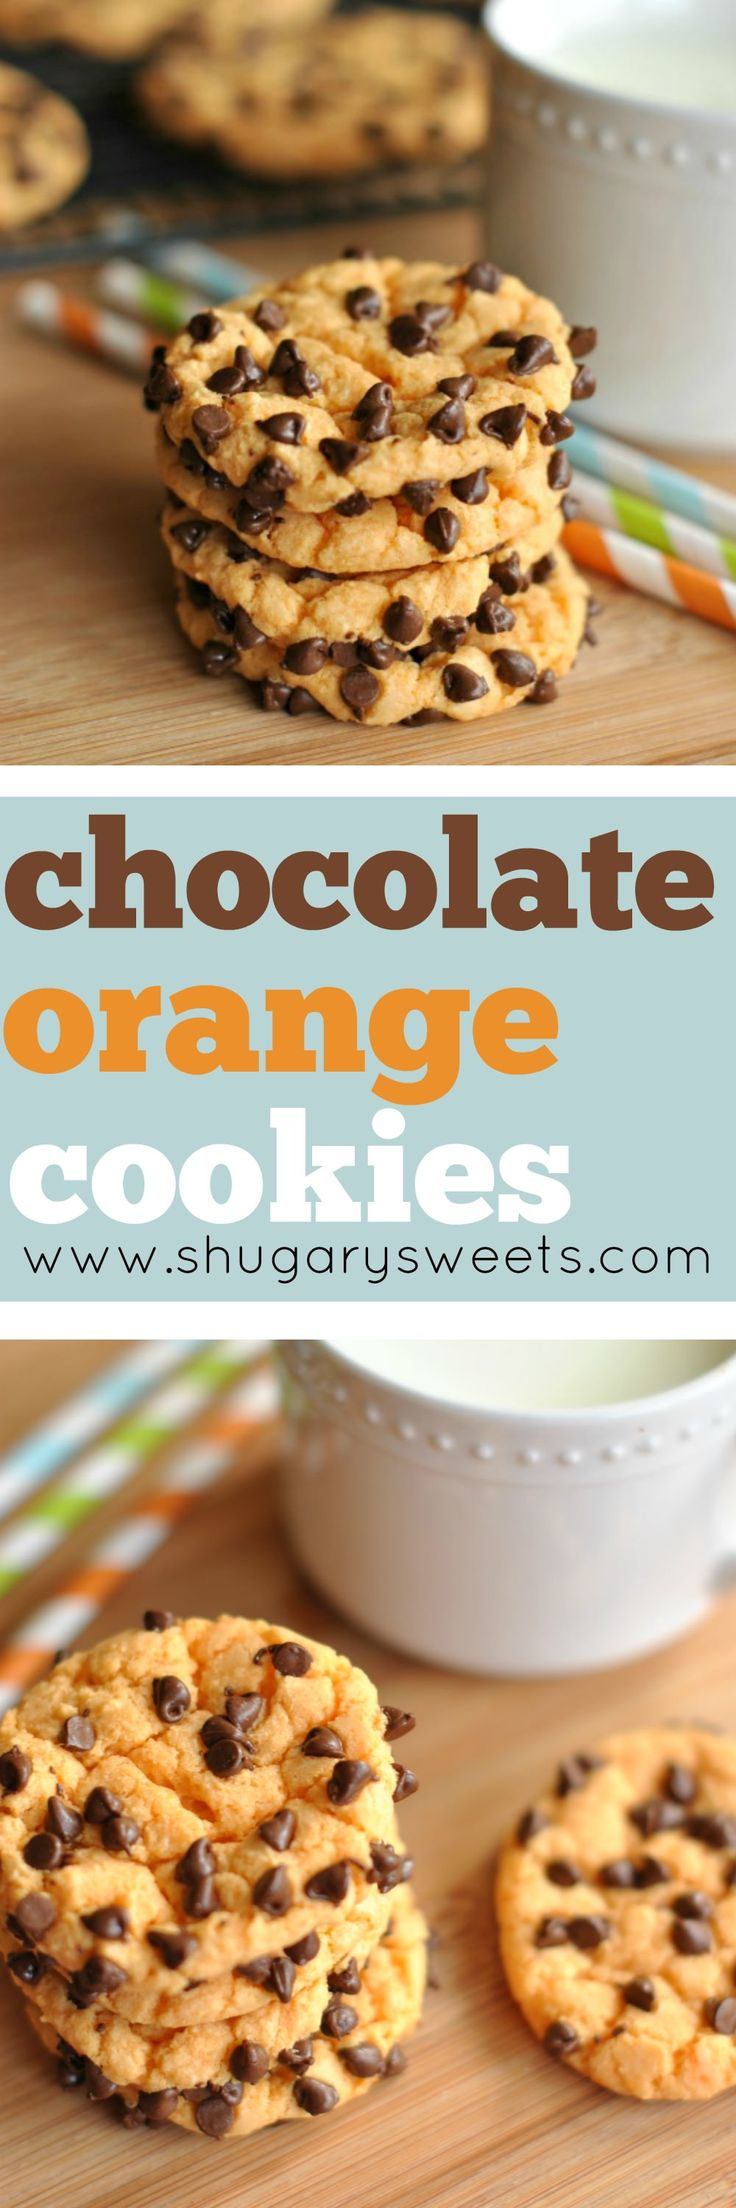 Orange Cake mix cookies rolled in mini Chocolate morsels! An irresistible cookie combination!